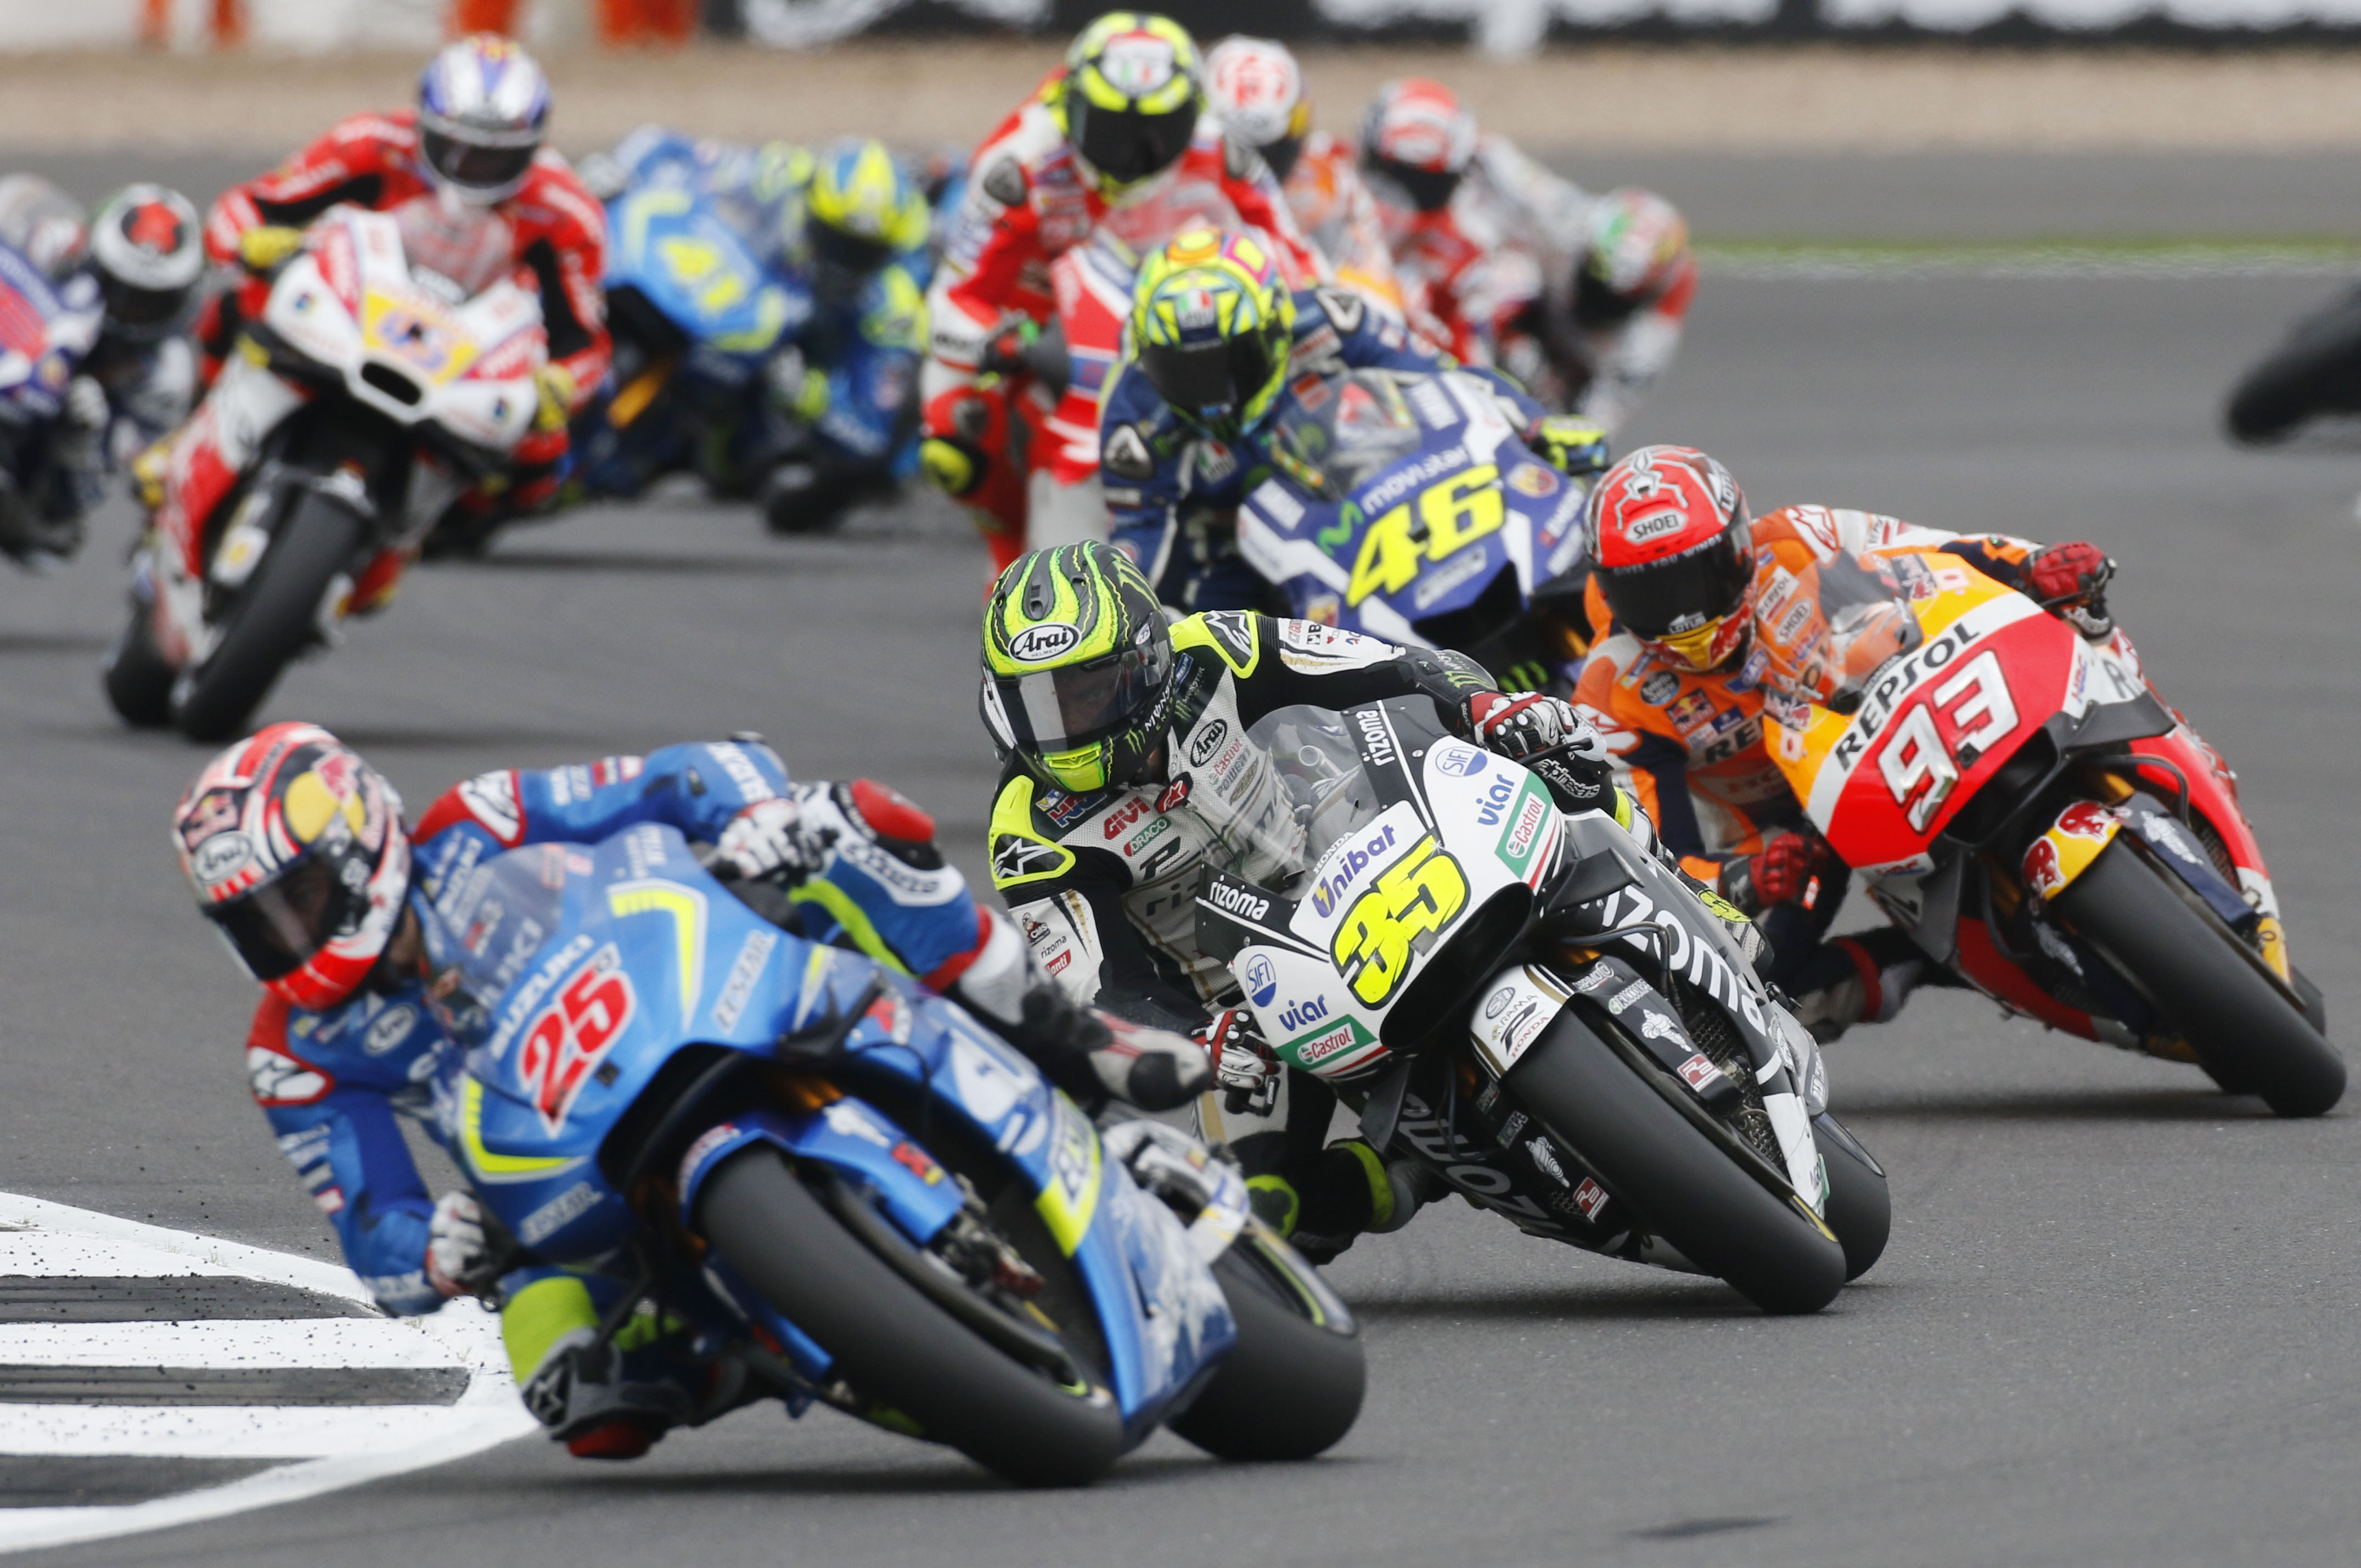 MotoGP Machines Return to the Track on Wednesday ... |Motogp